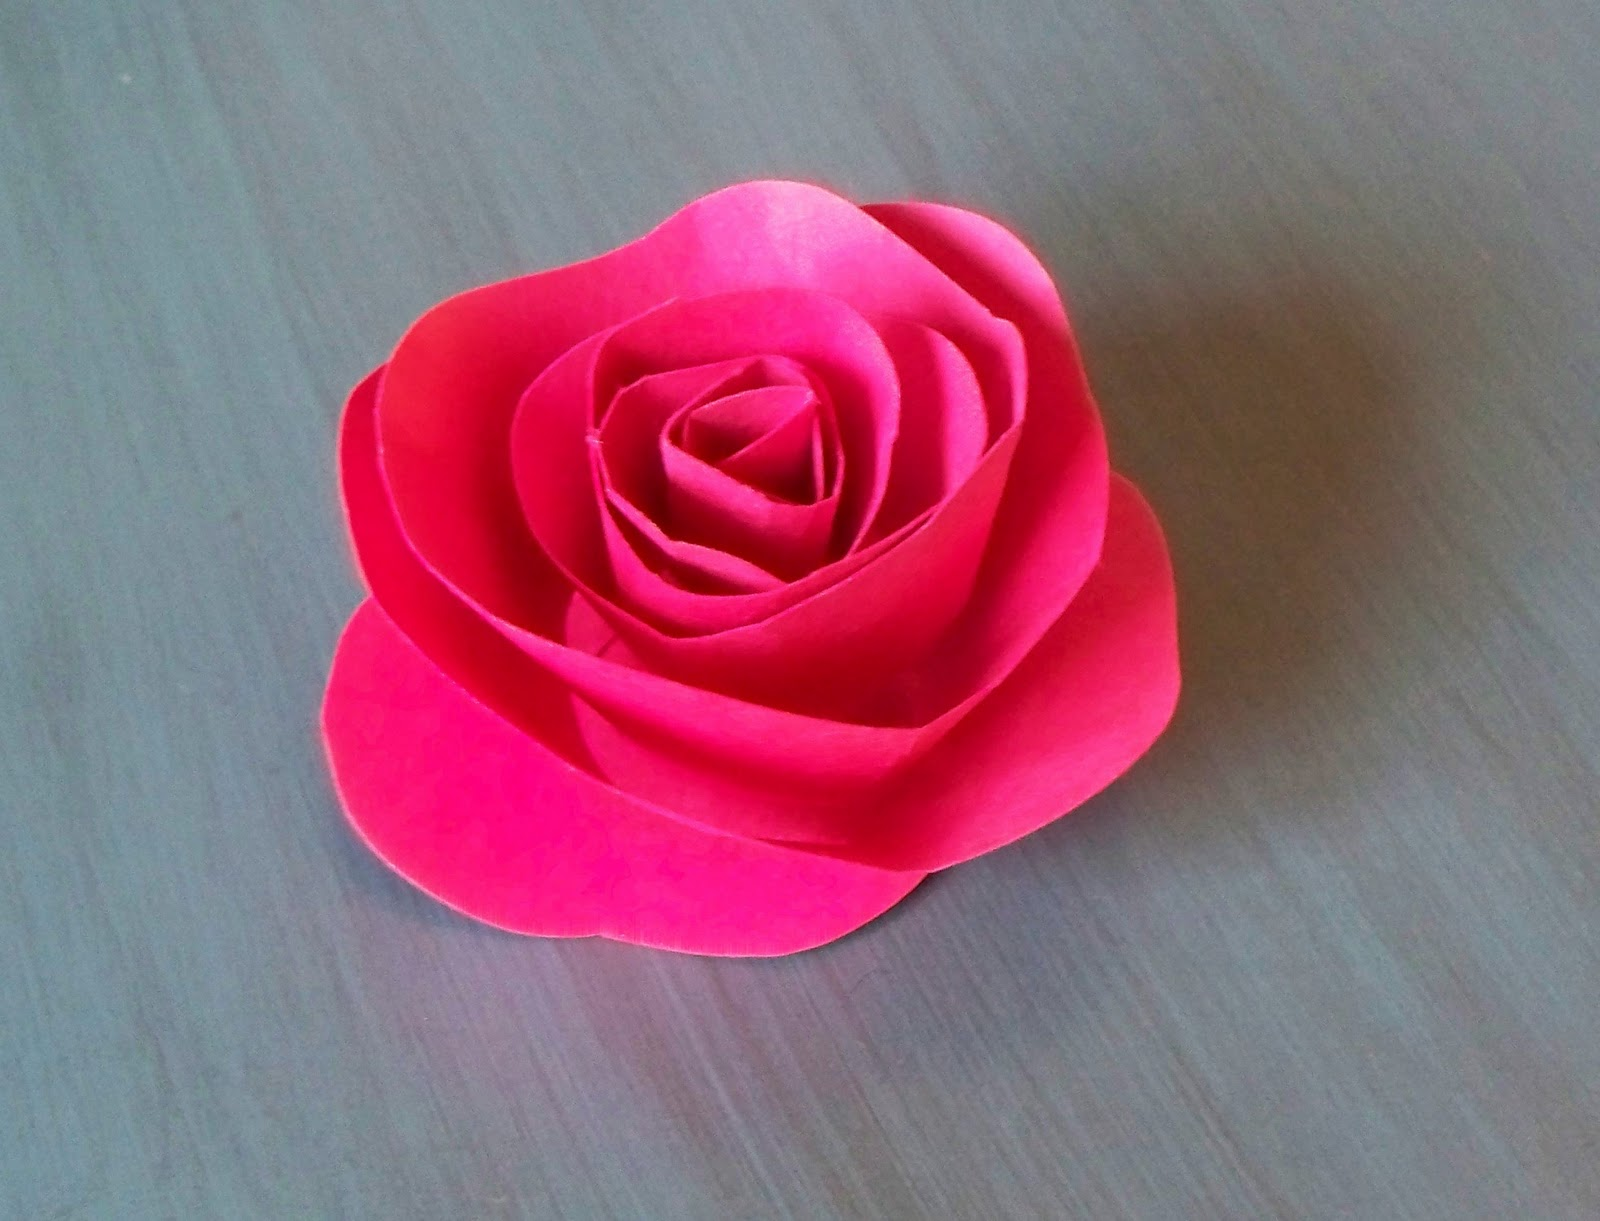 How to Make a Paper Rose Easily